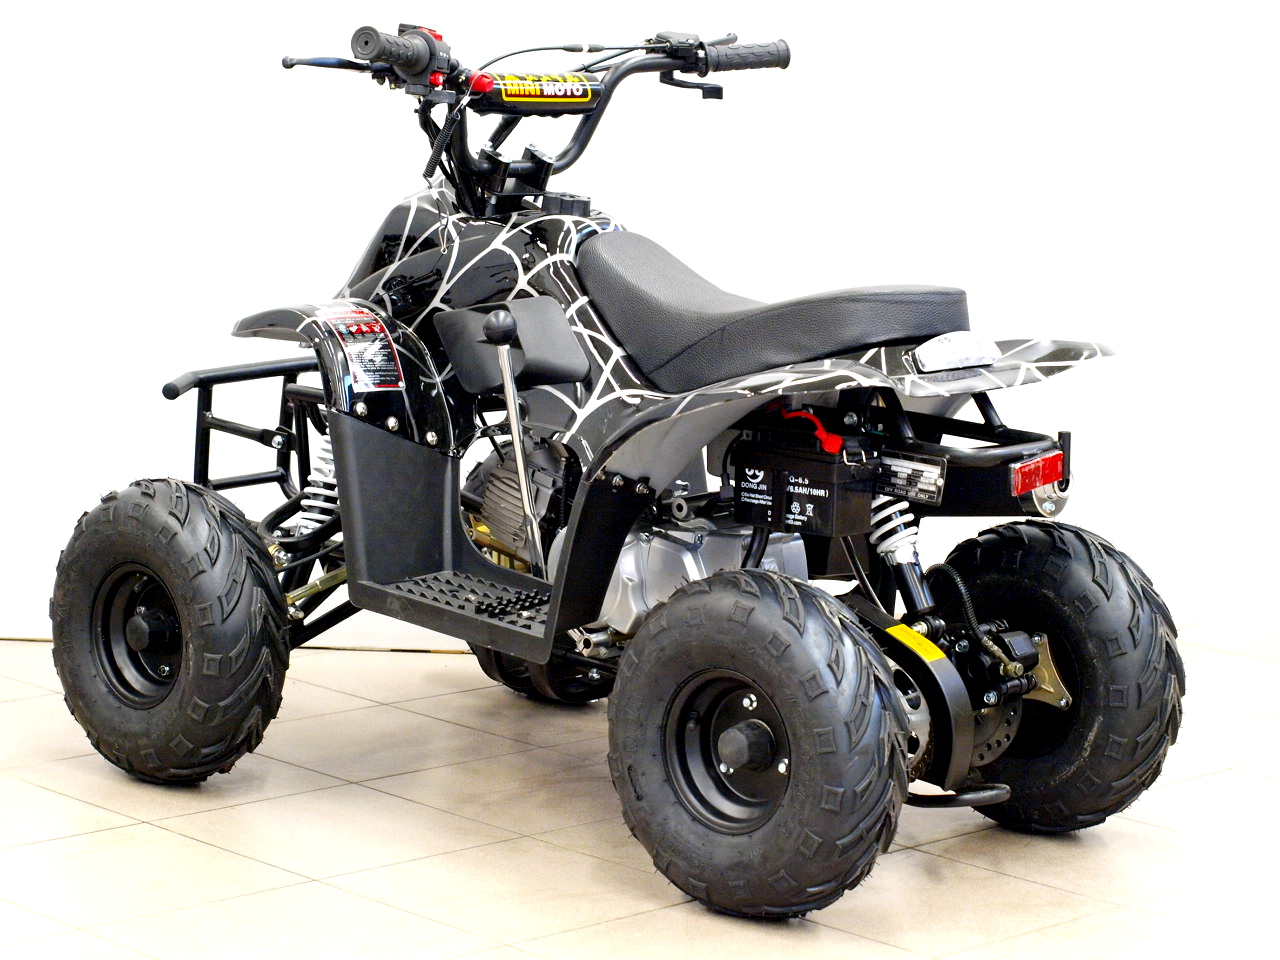 4 Wheel Electric Bike >> Quad bike 110cc CRUSADER SUPer EDITION 6c